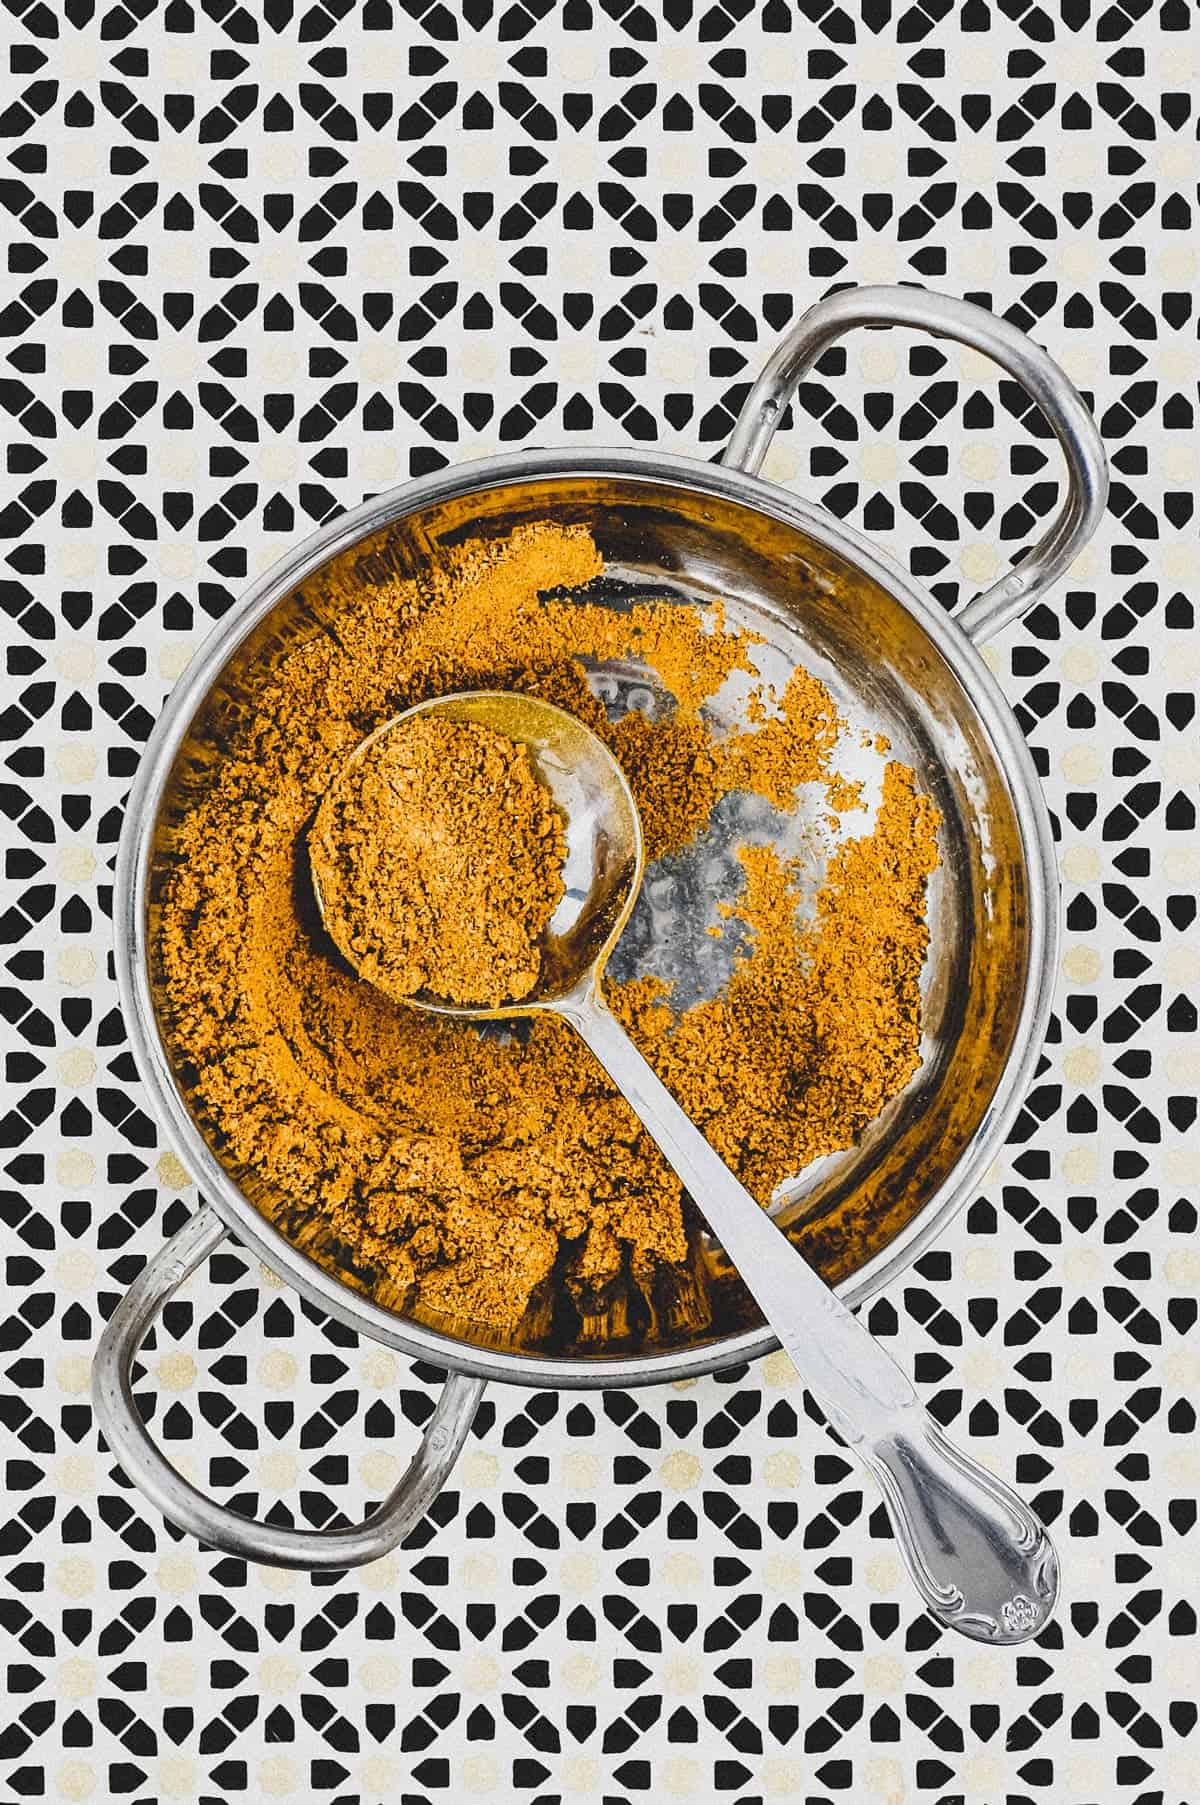 Ground spices combined with turmeric form a yellow spice powder called Hawaij, shown here in a silver bowl with spoon on an Arabic patterned background.